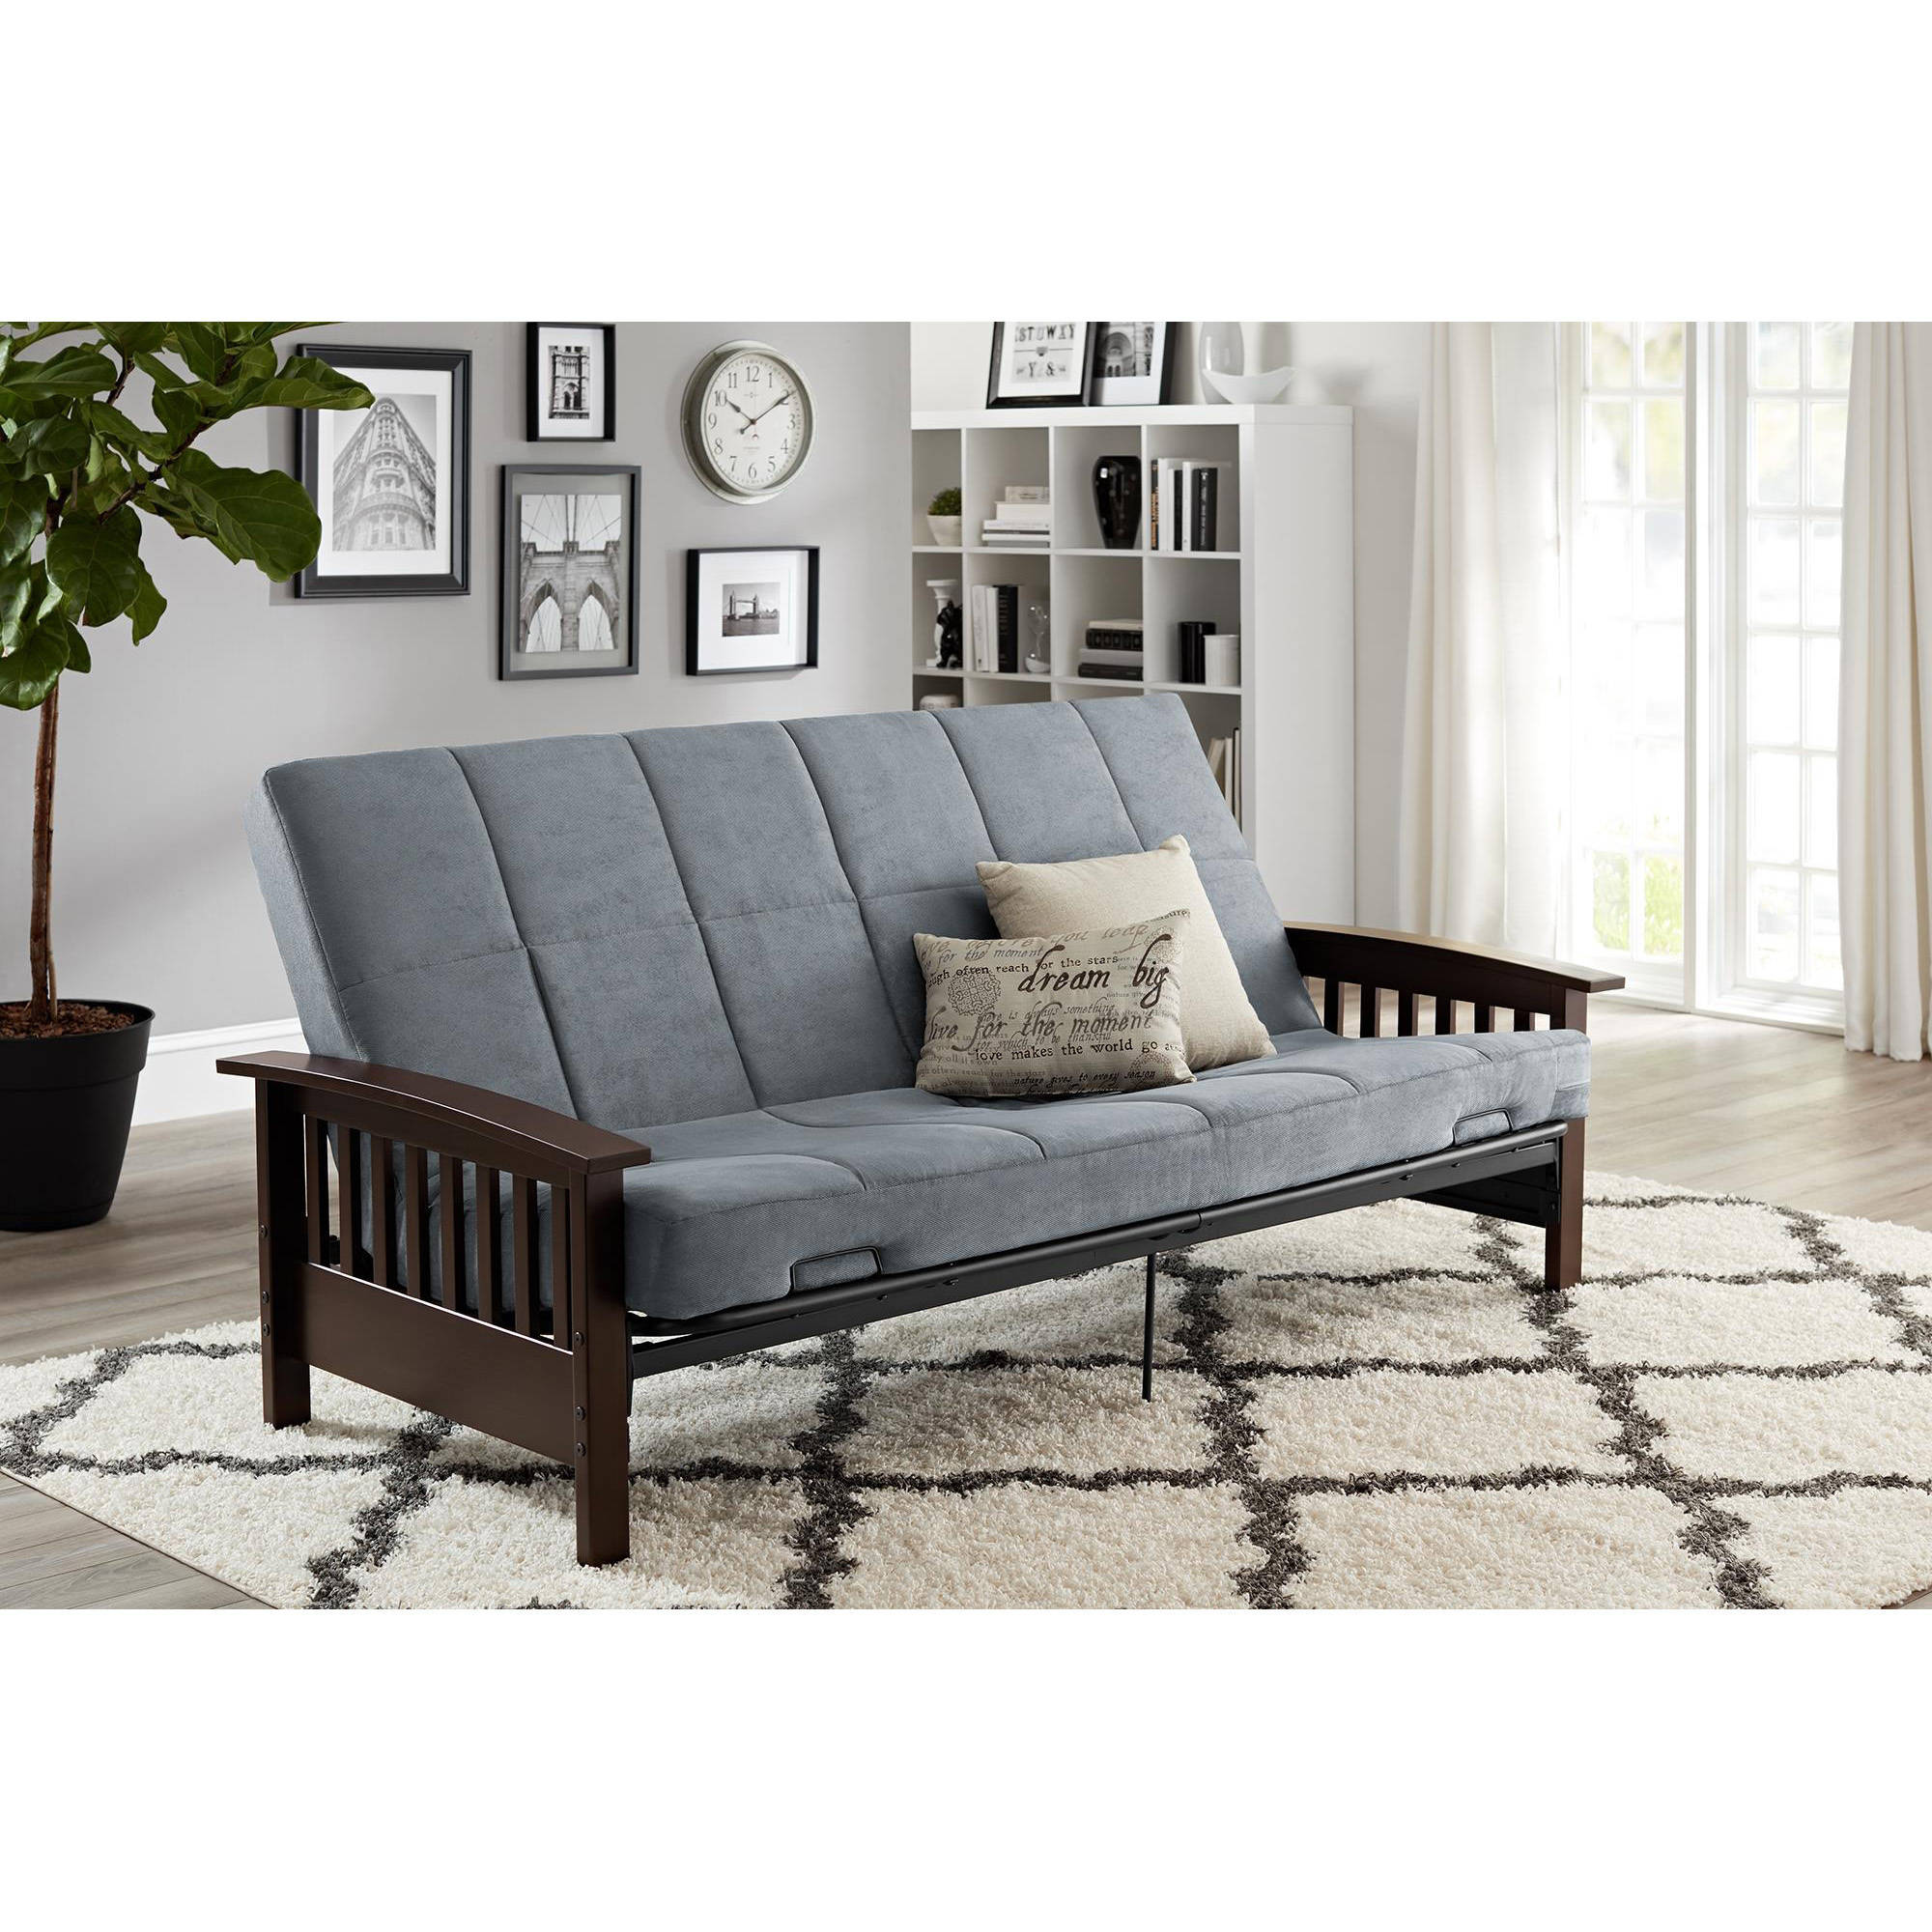 itm convertible futon less sofa for faux leather futons tufted quality morgan top brown mainstays